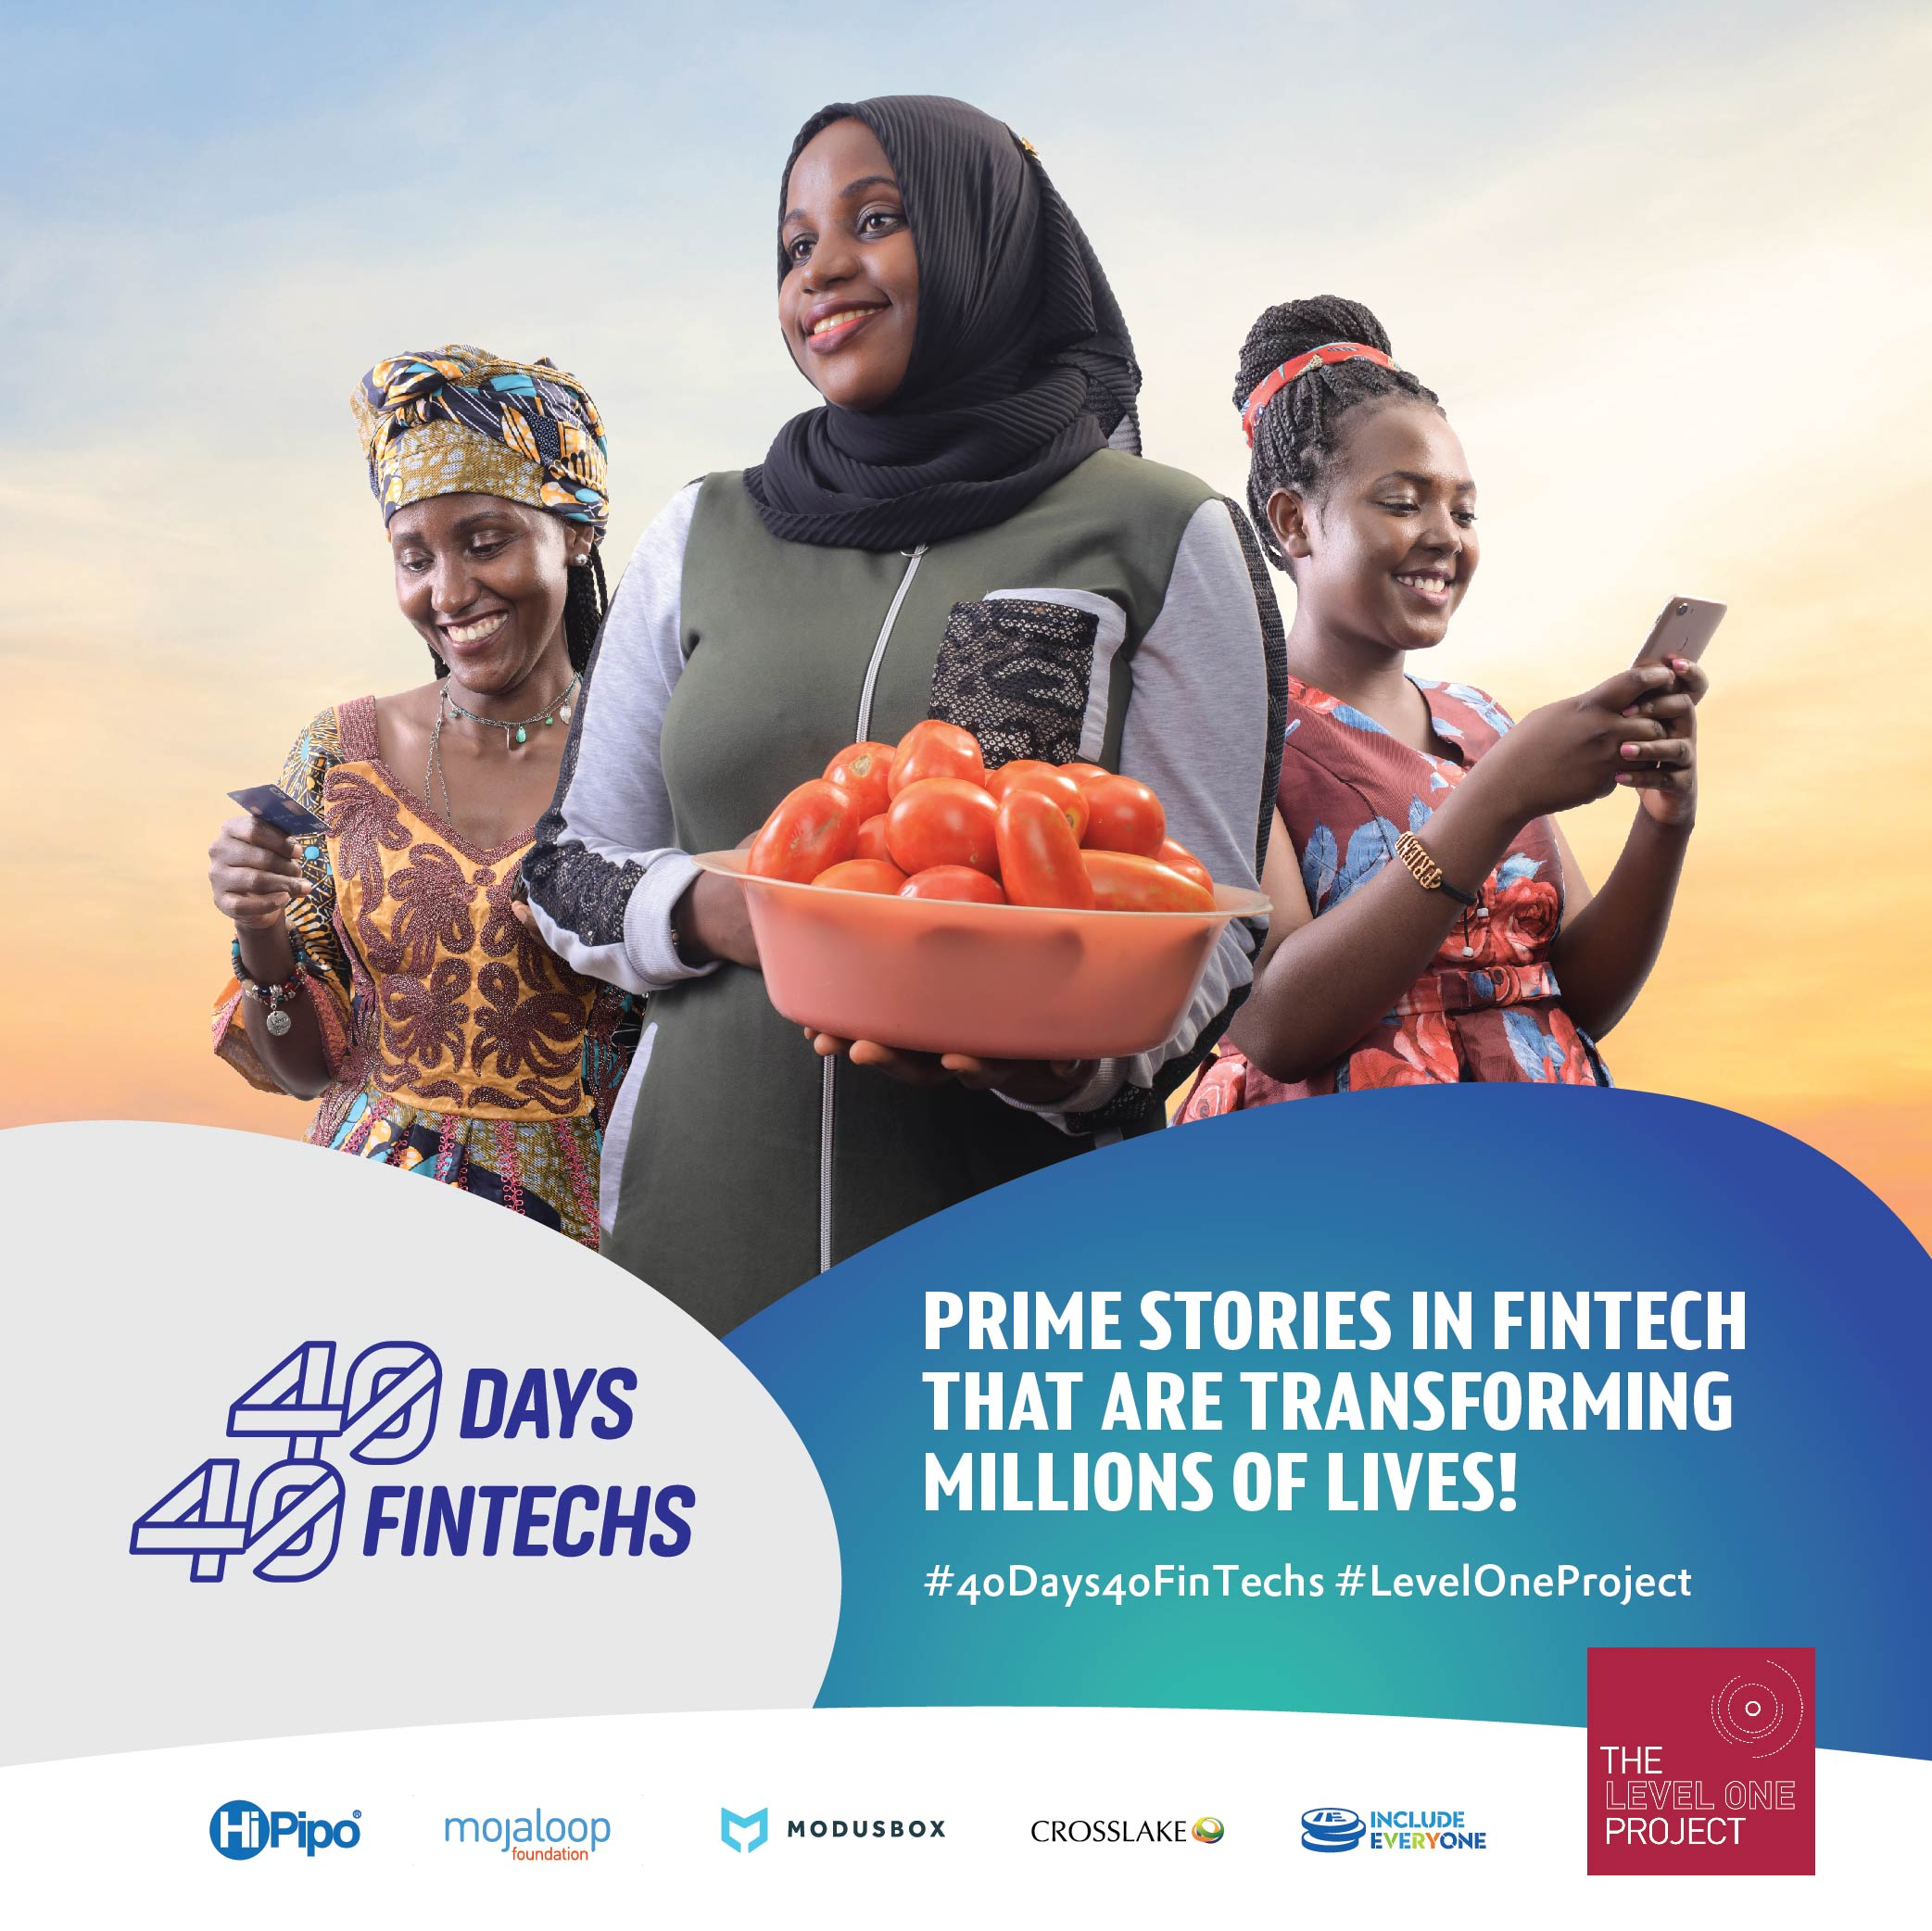 40 Days 40 FinTechs - Level One Project Season Two has commenced (PHOTO /Courtesy)